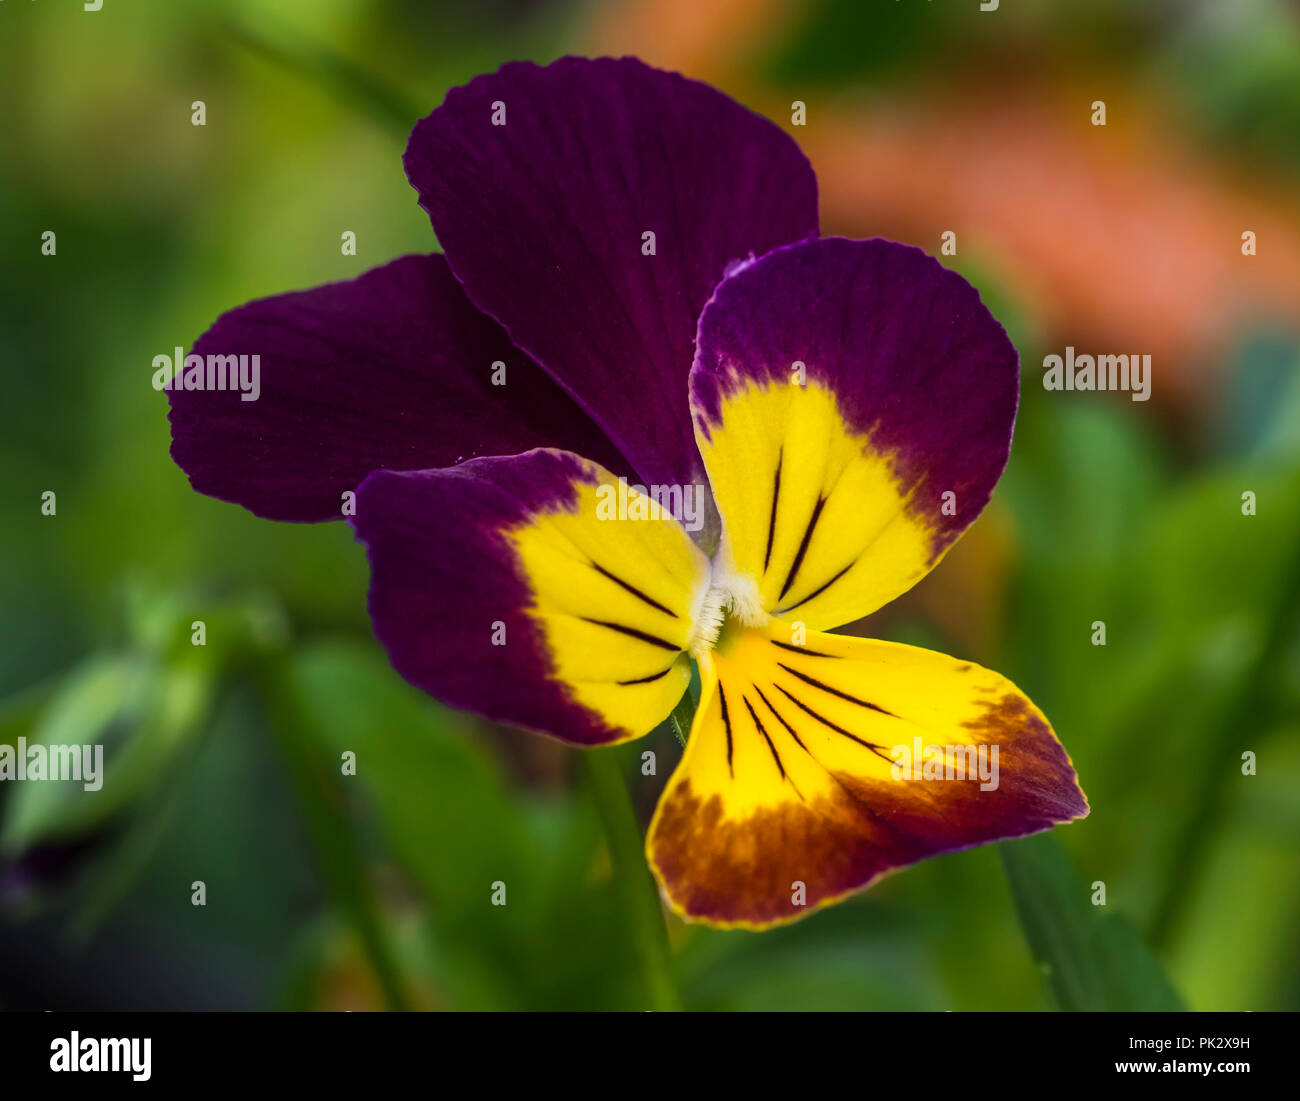 Viola 'Endurio Red with Yellow Face' (Viola cornuta) flower from the annual flowering plant in Autumn in West Sussex, England, UK. - Stock Image